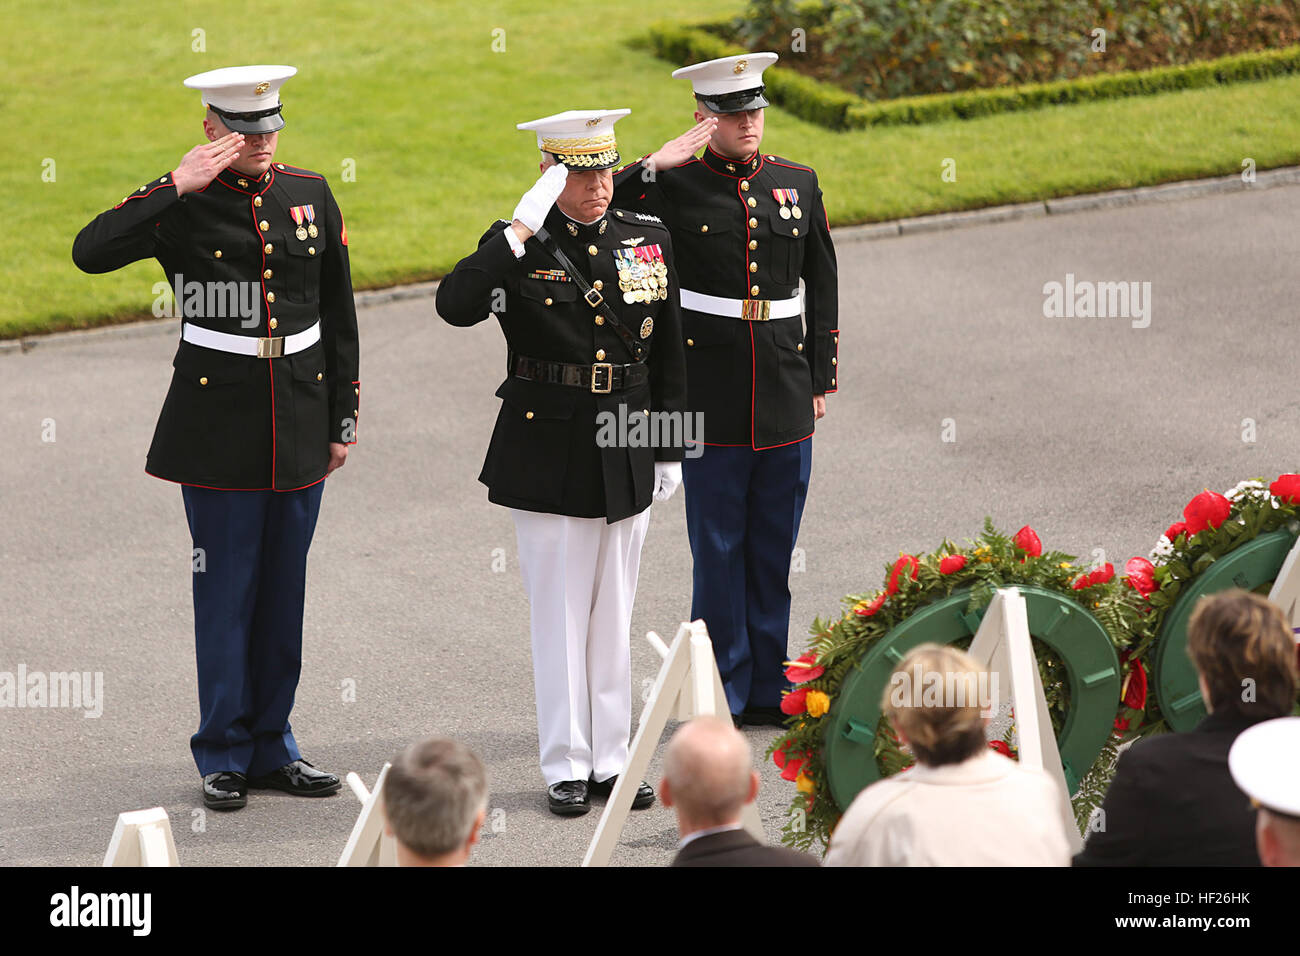 Lance Cpl. Robert Debevoise (left) and Lance Cpl. Tucker Brinkman assist the 35th Commandant of the Marine Corps, Stock Photo